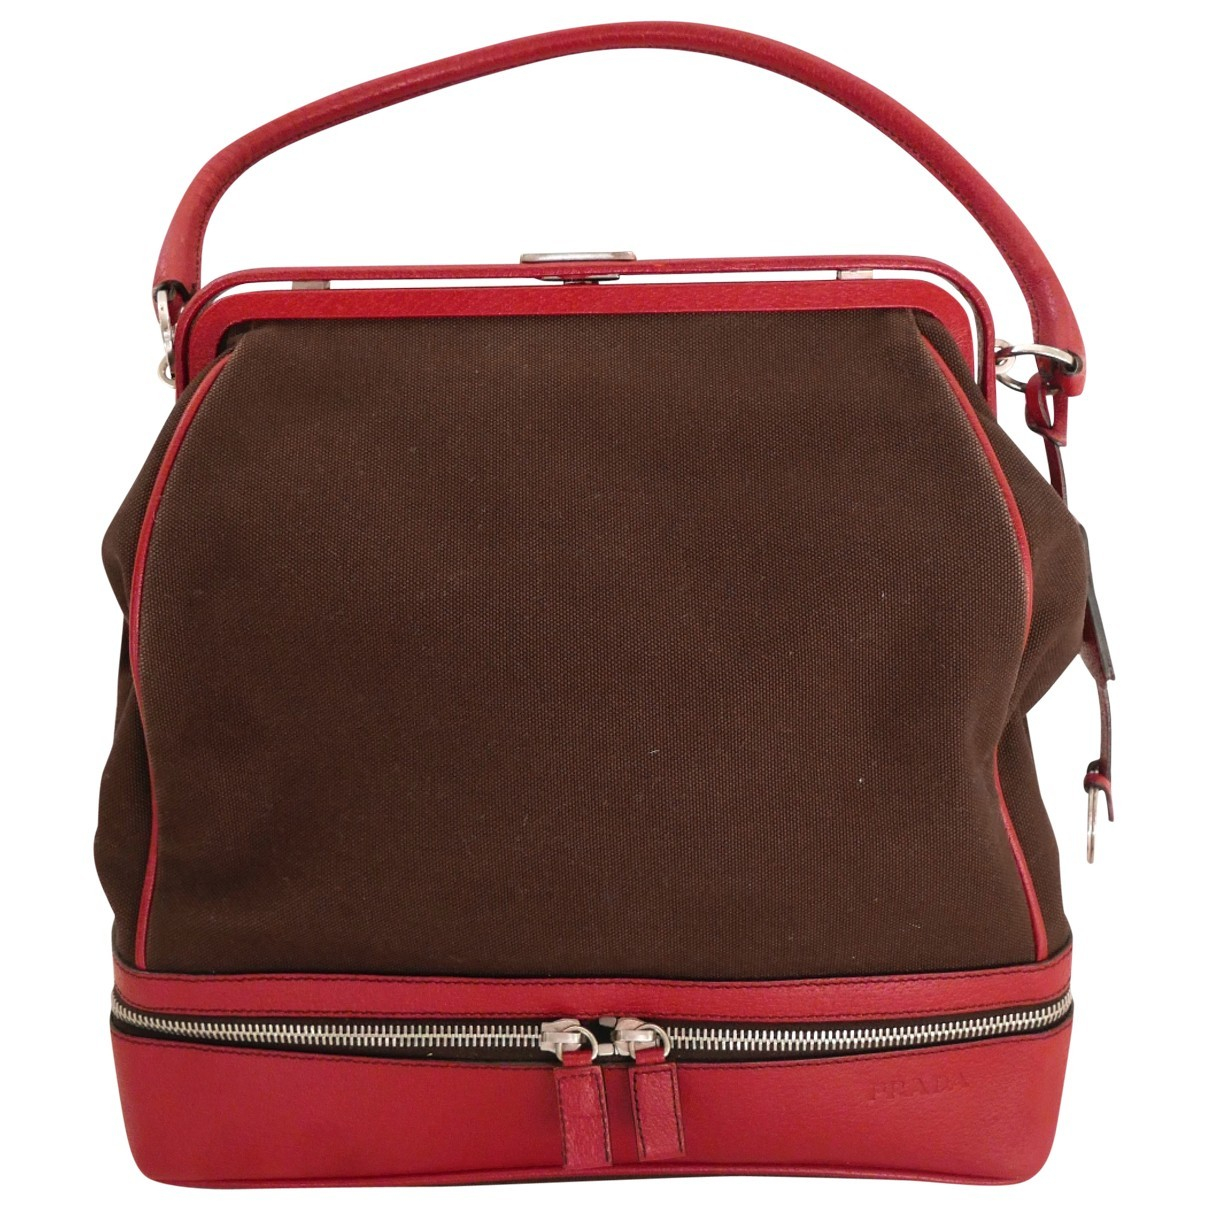 Prada \N Brown Cloth handbag for Women \N